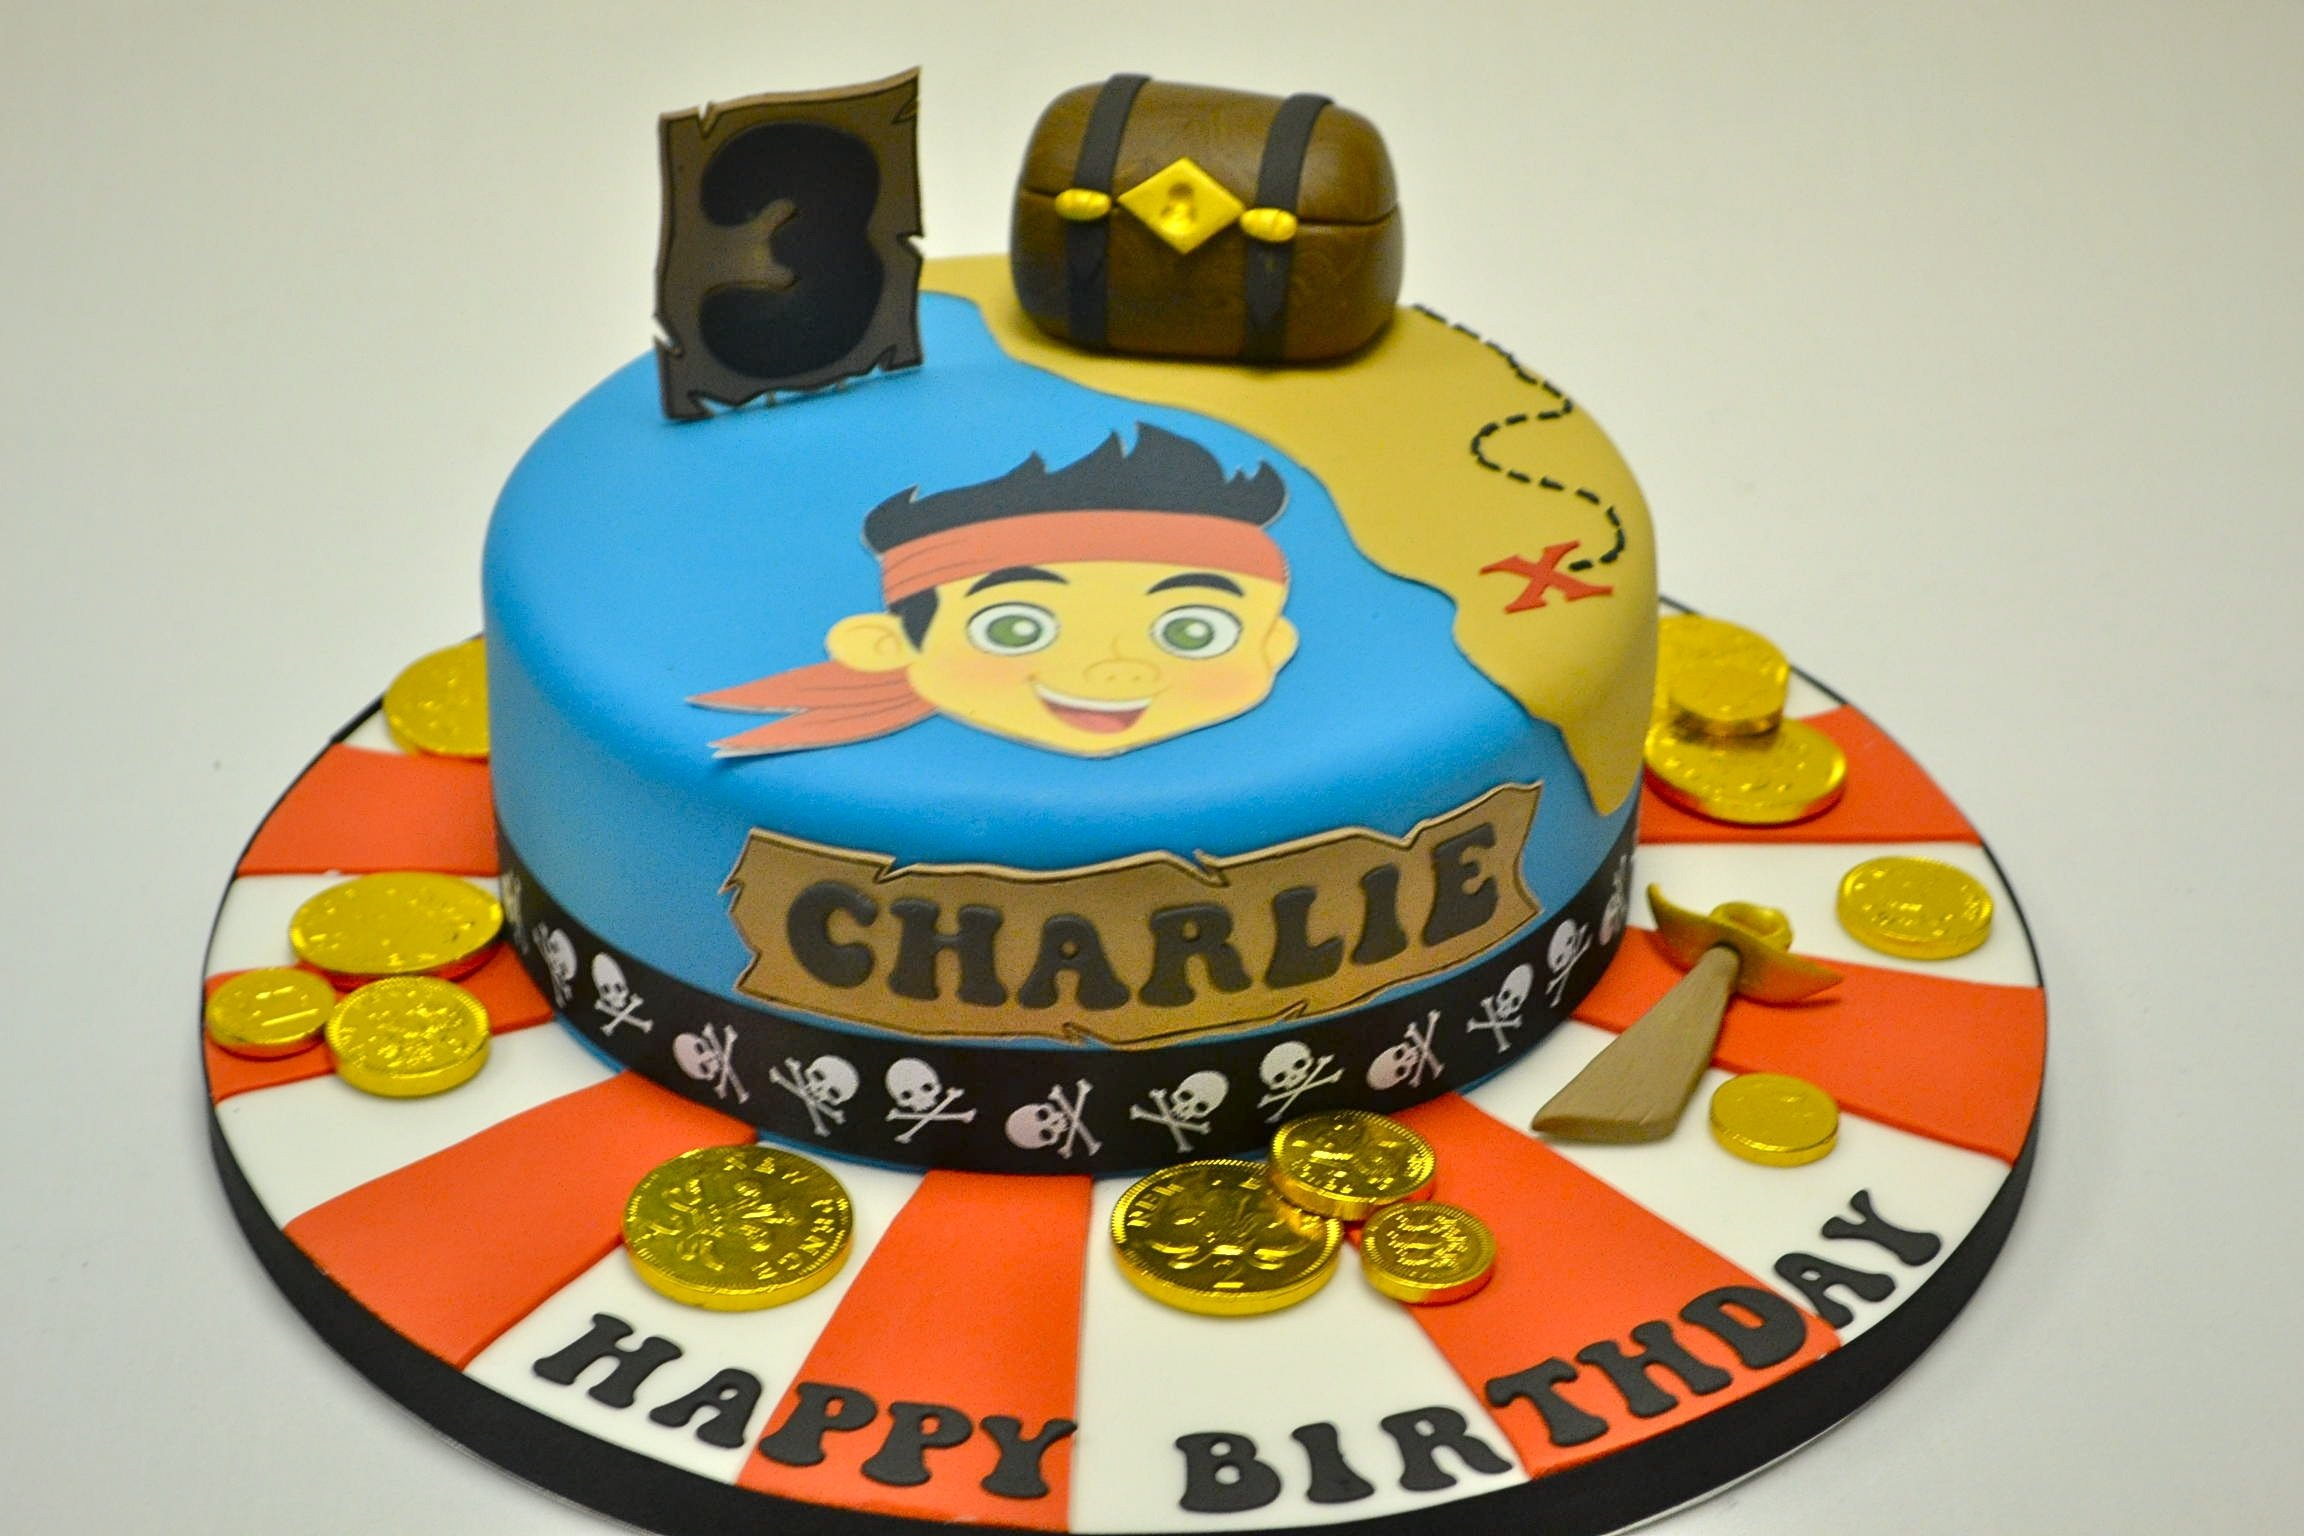 10 Nice Jake And The Neverland Pirate Cake Ideas jake and the neverland pirates treasure cake celebration cakes 1 2020